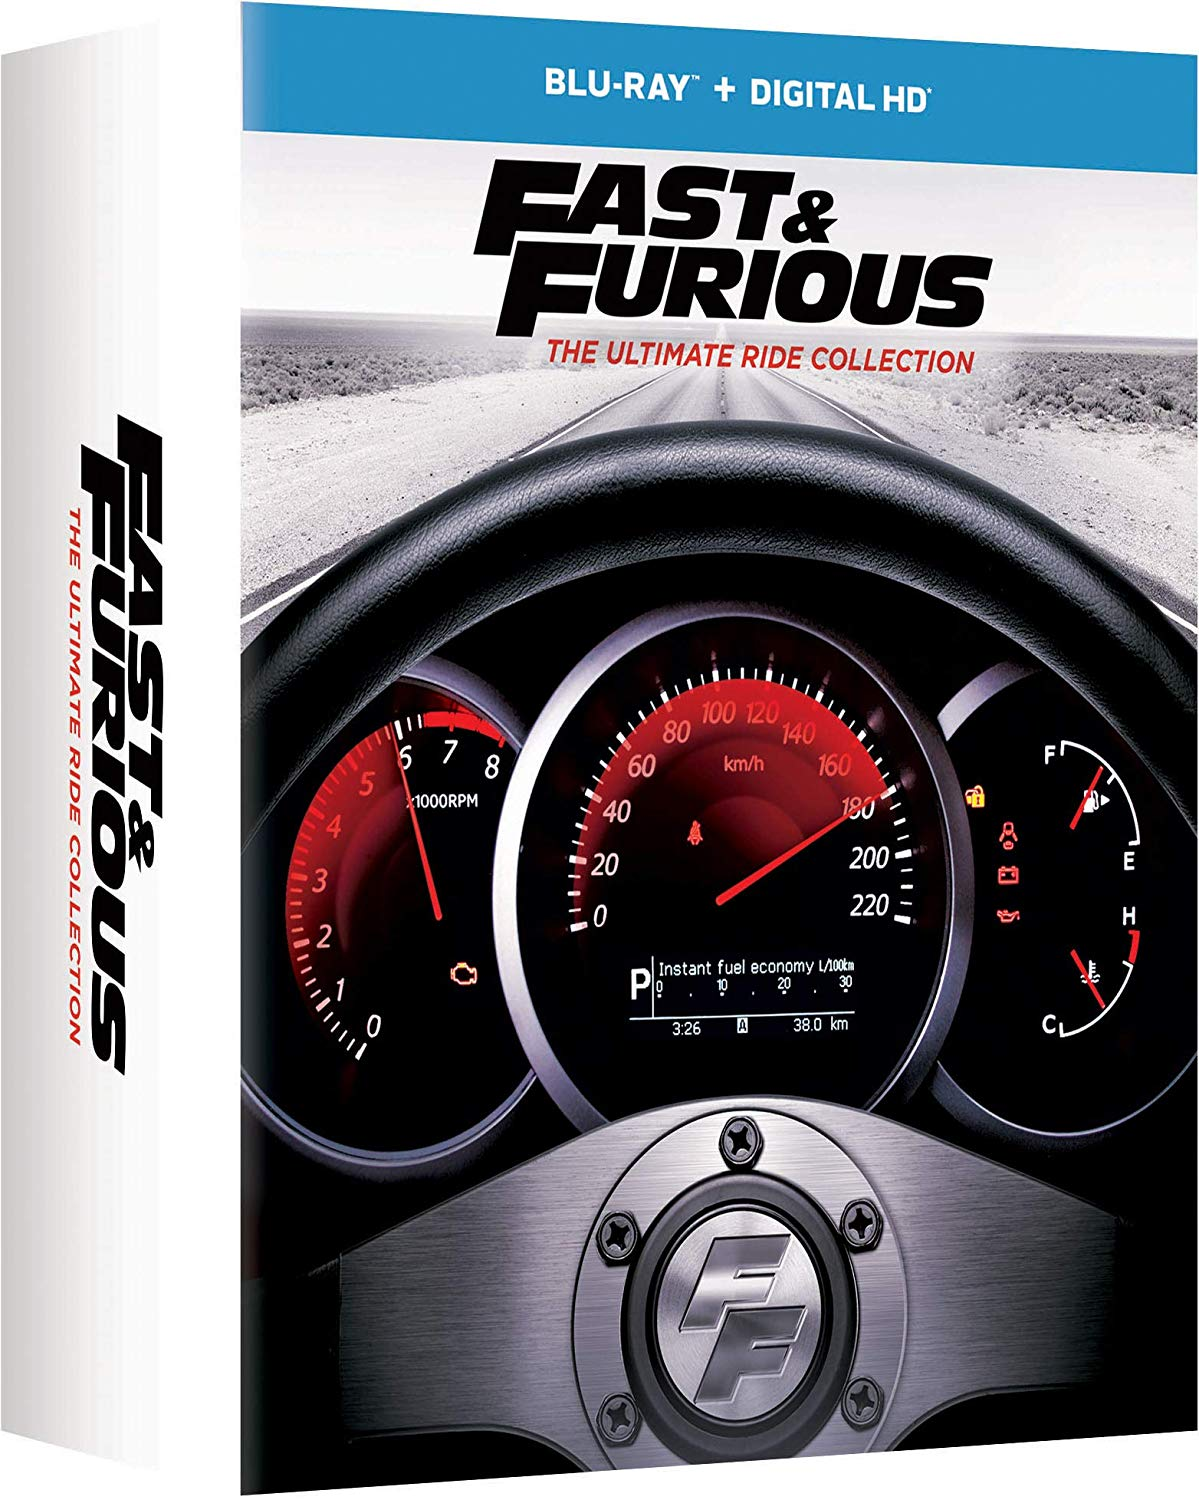 The Fast & The Furious [Movie] - Fast & Furious: The Ultimate Ride Collection